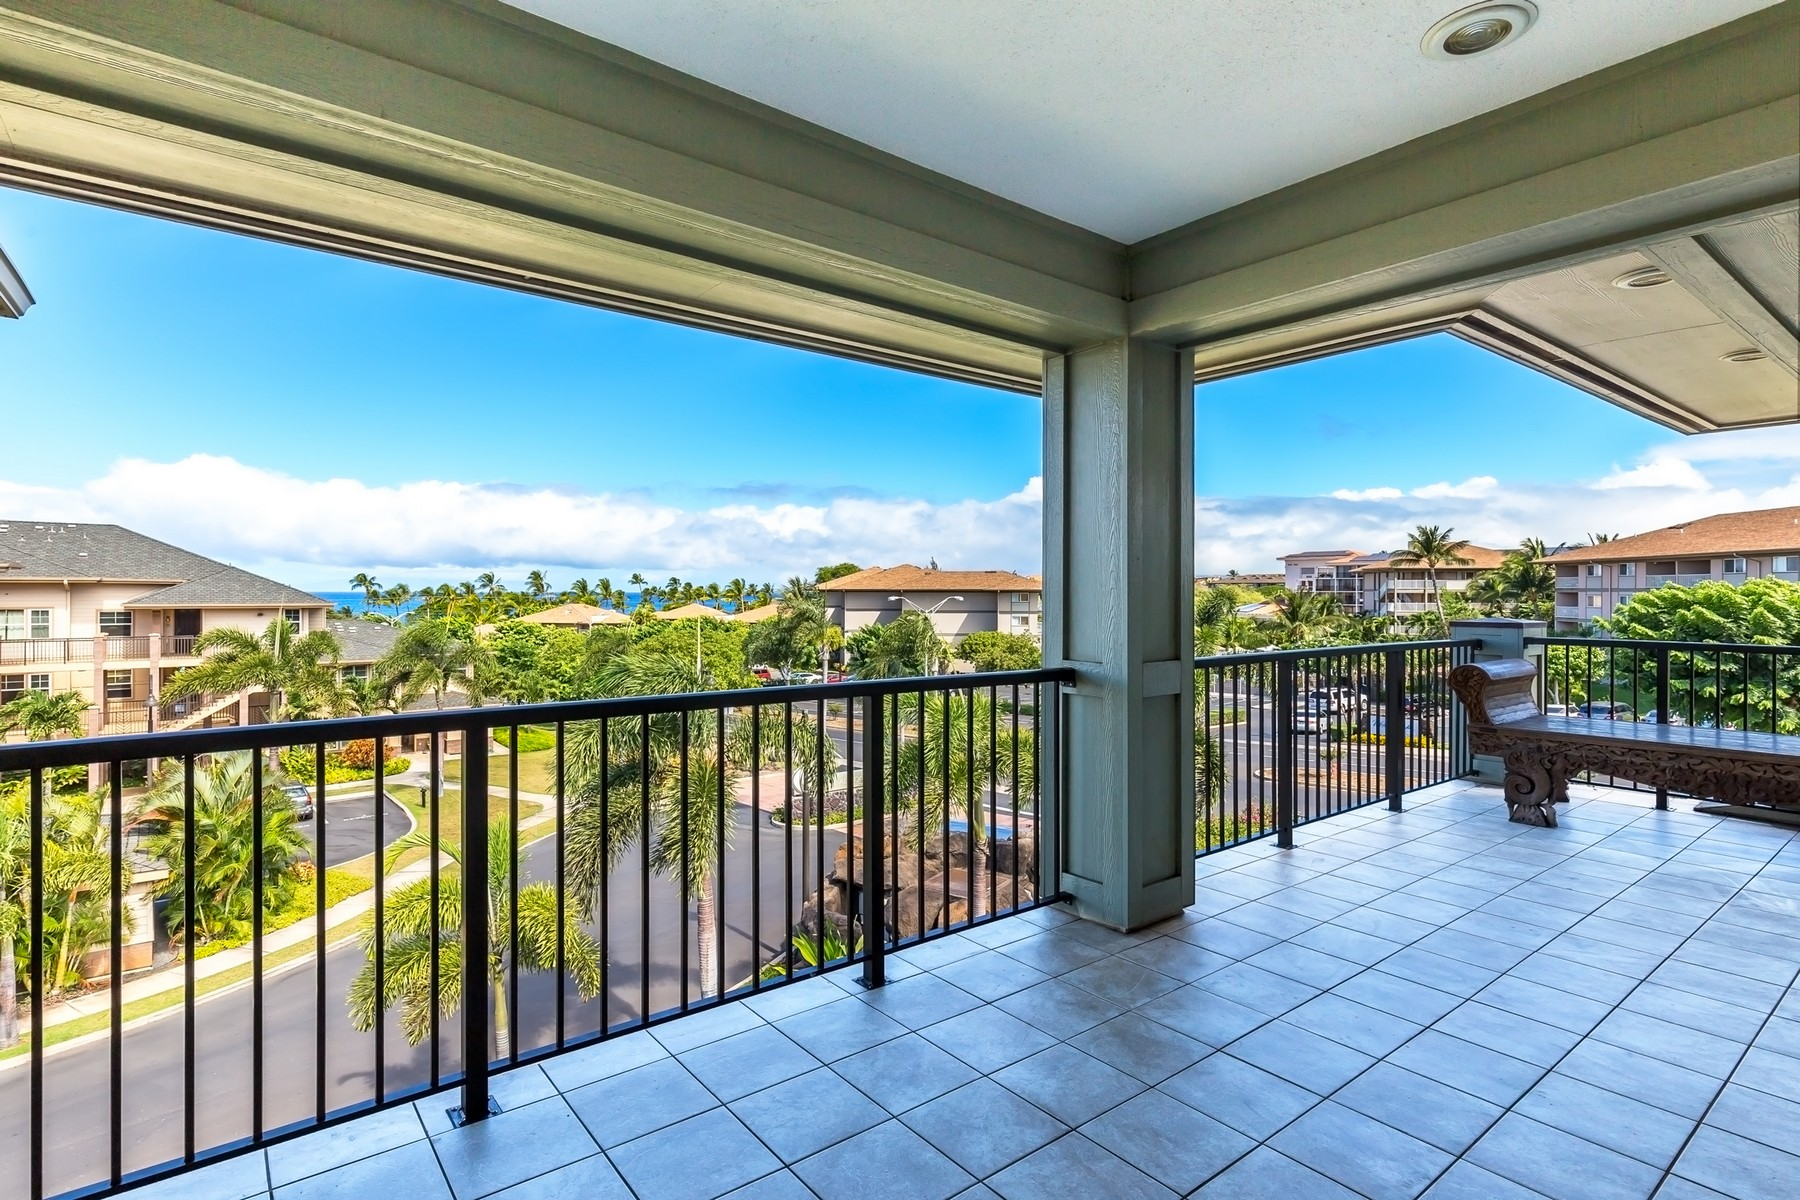 Property For Sale at Ke Alii Ocean Resort on Maui